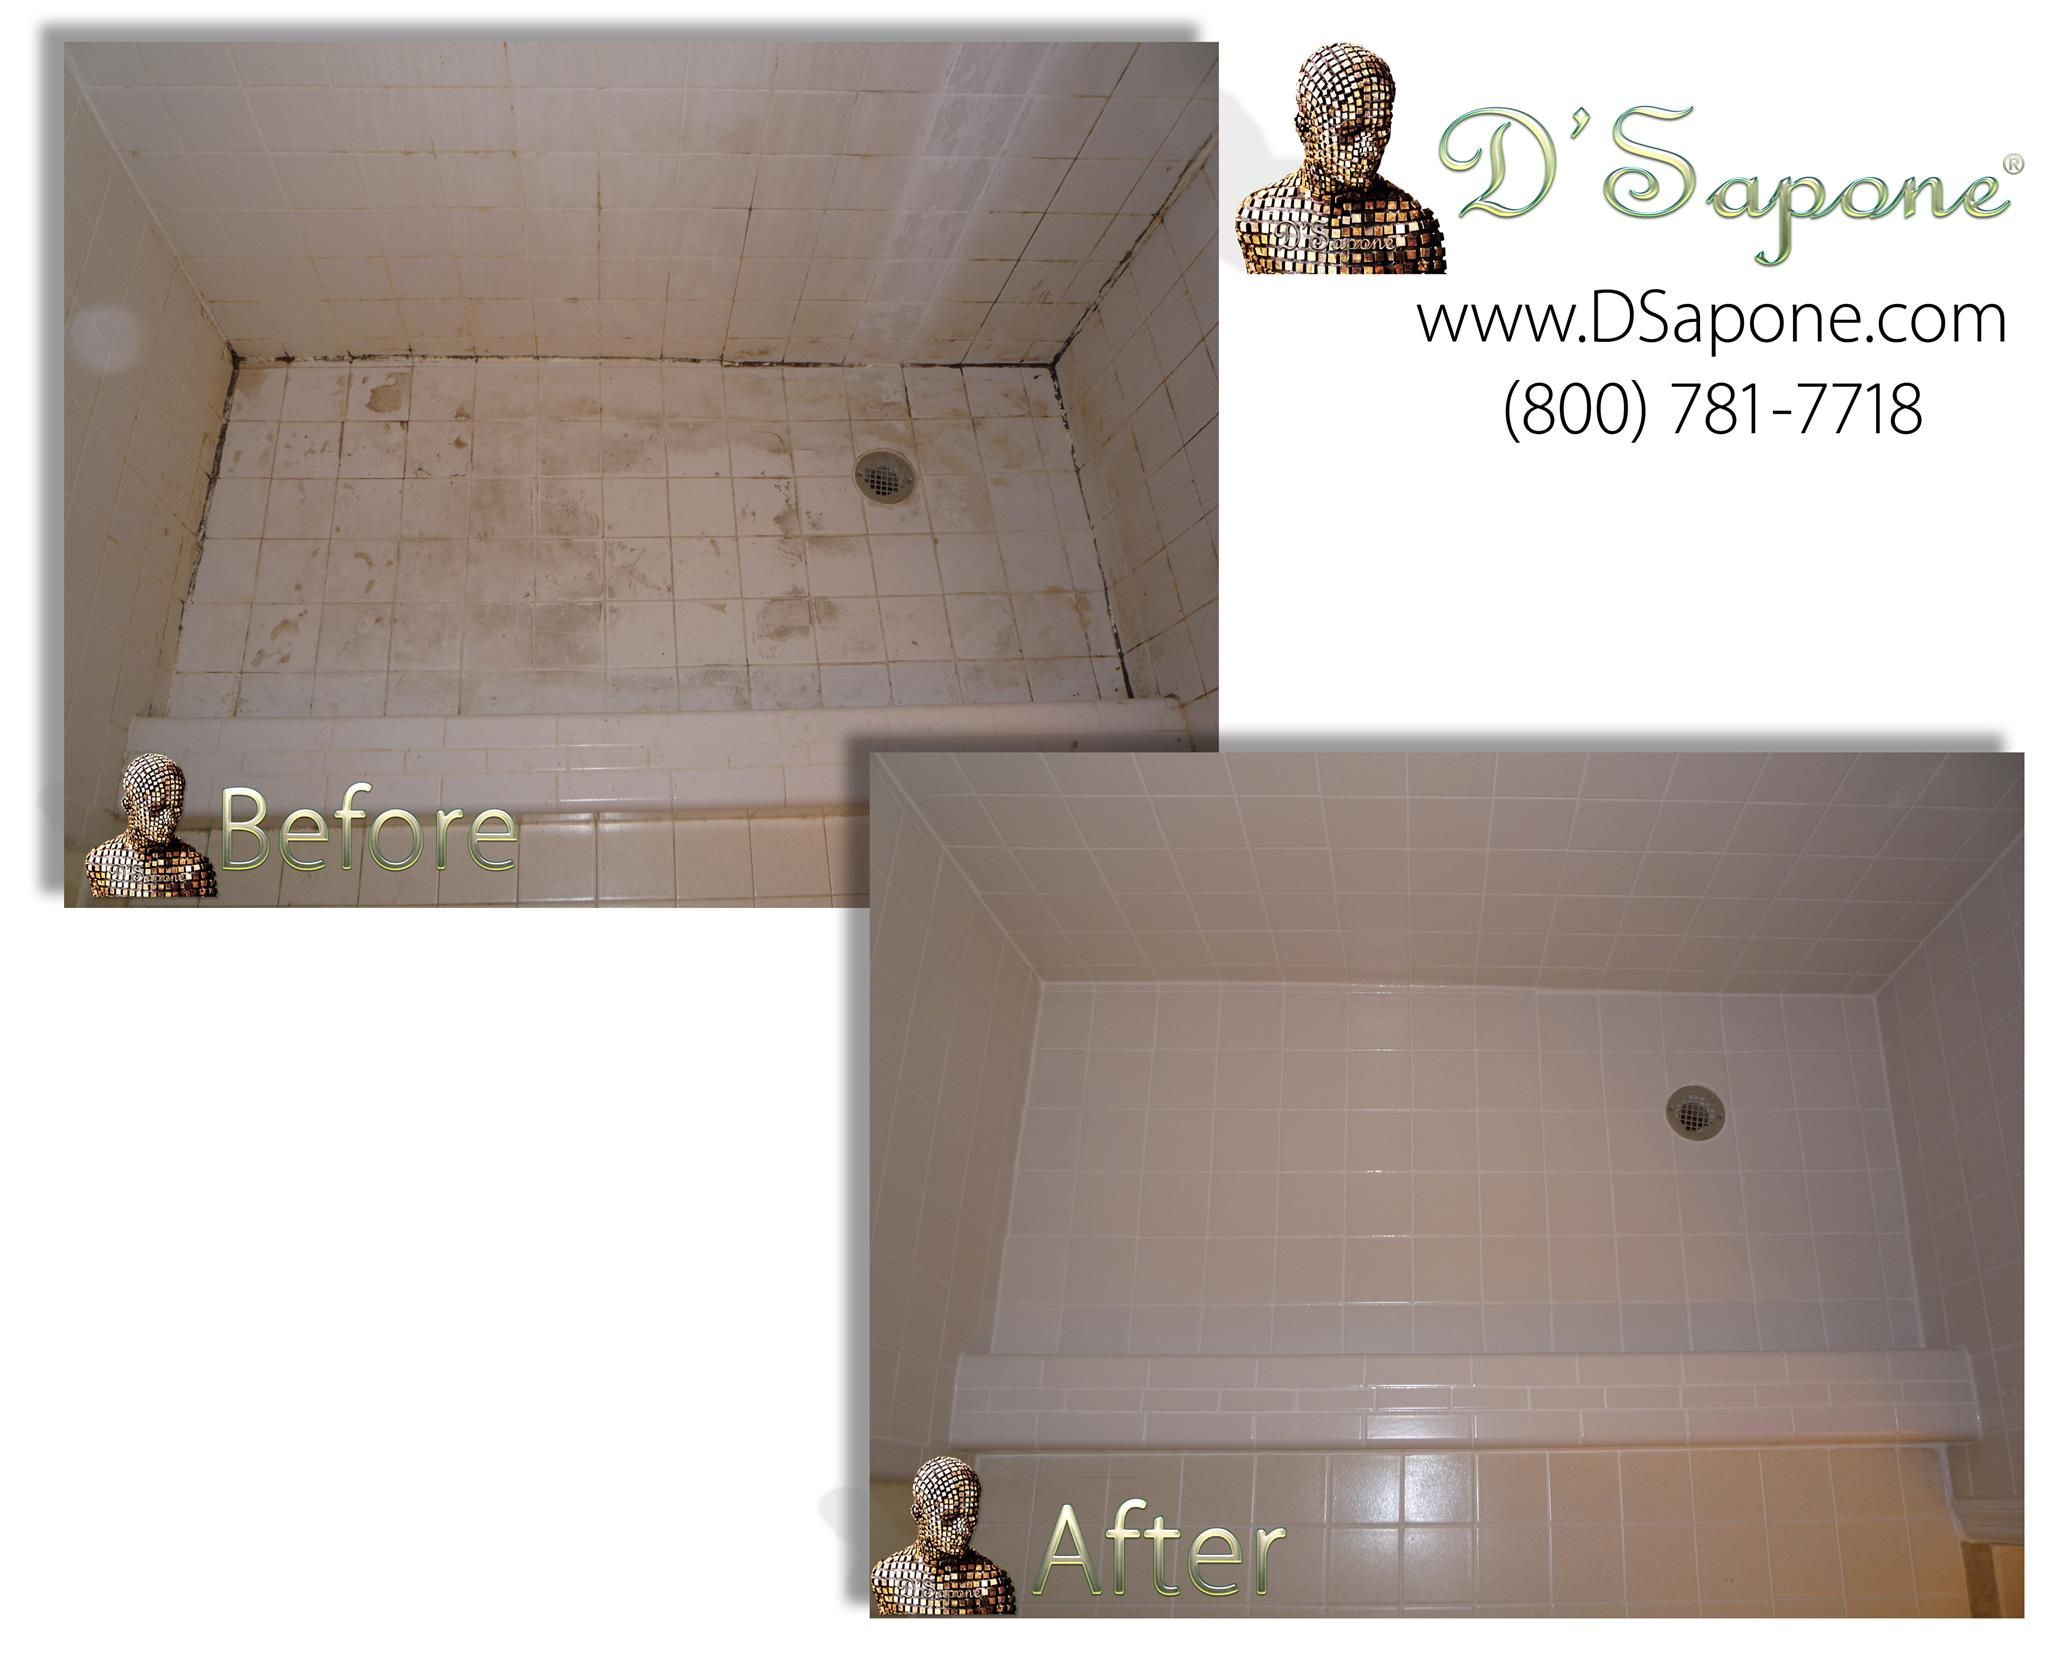 Shower Restoration Service In Atlanta Ga Cleaning Shower Tiles